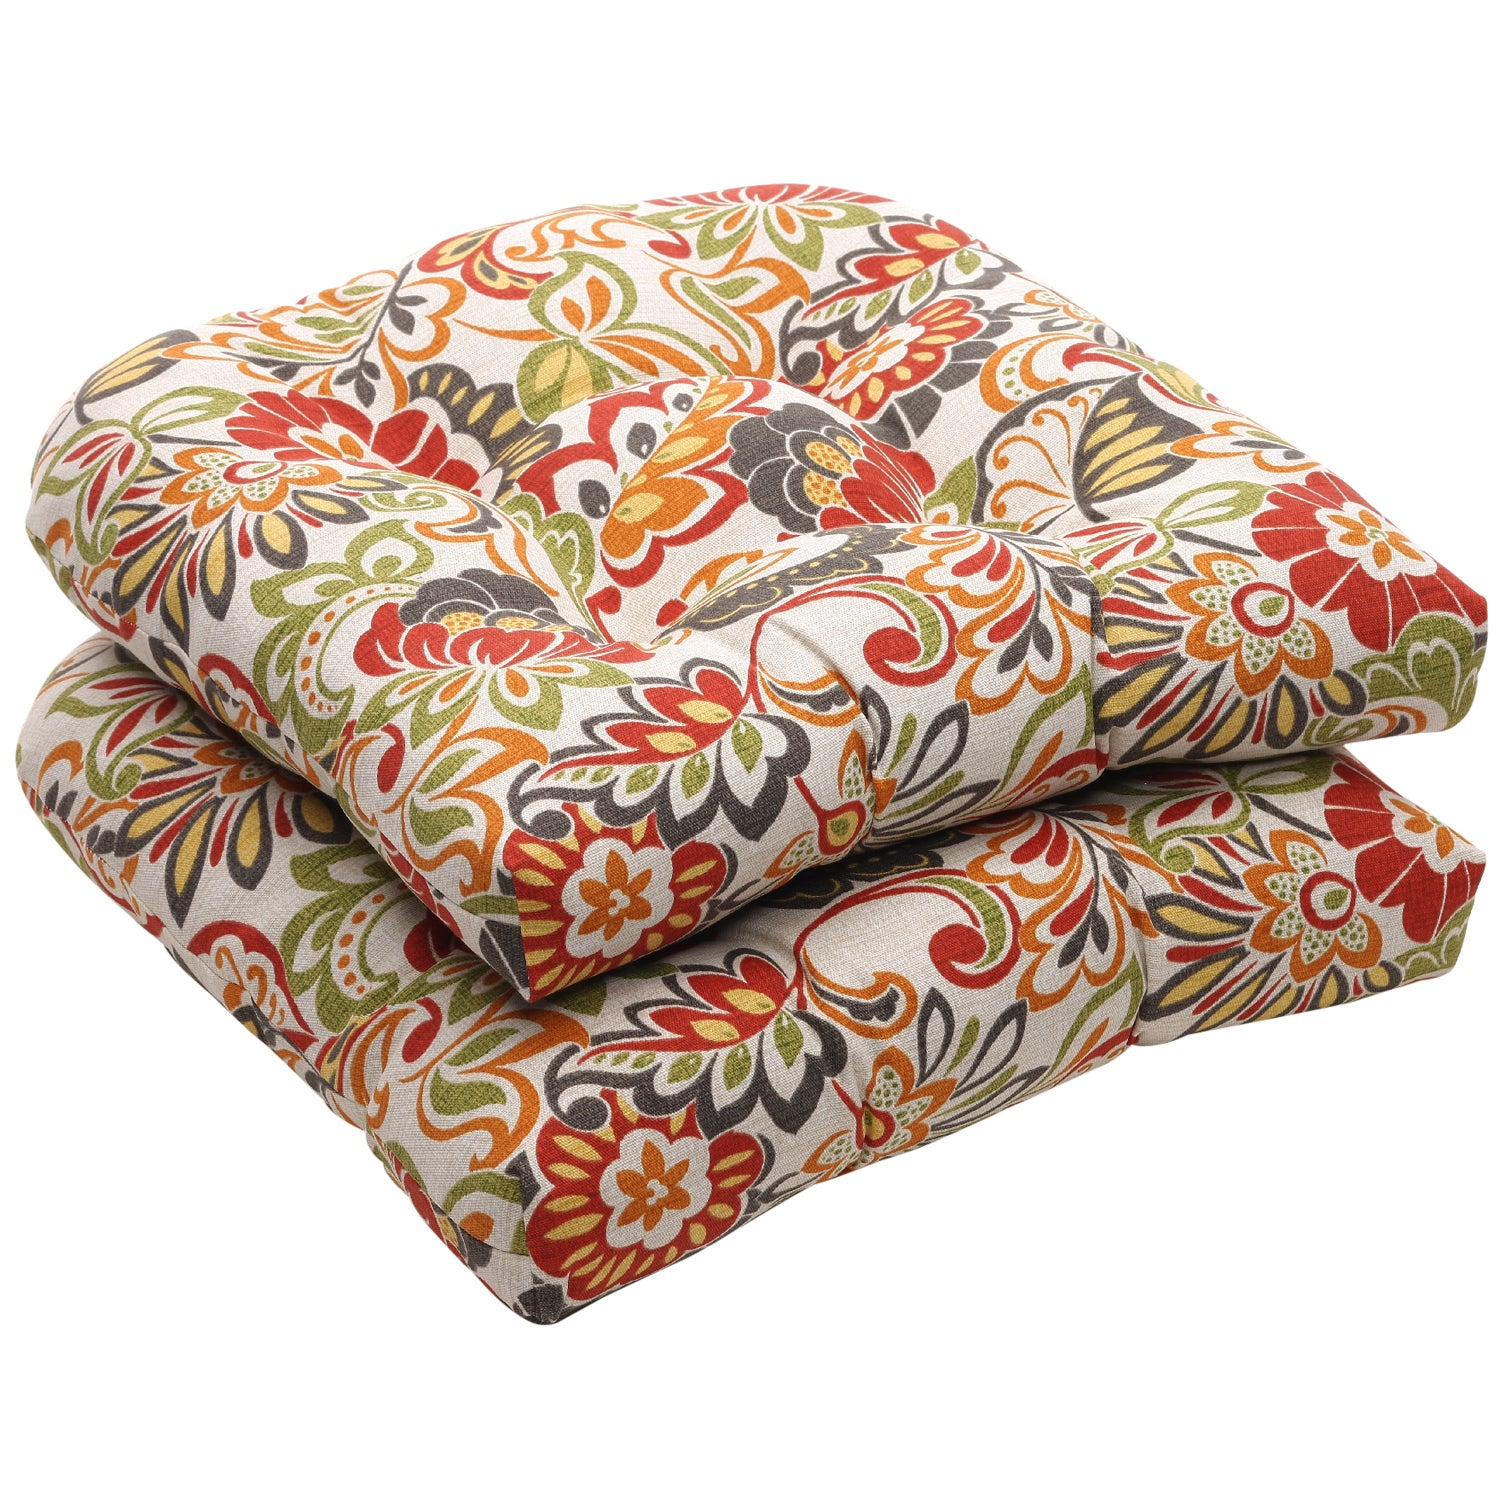 Outdoor Multicolored Floral Wicker Seat Cushions (Set Of 2